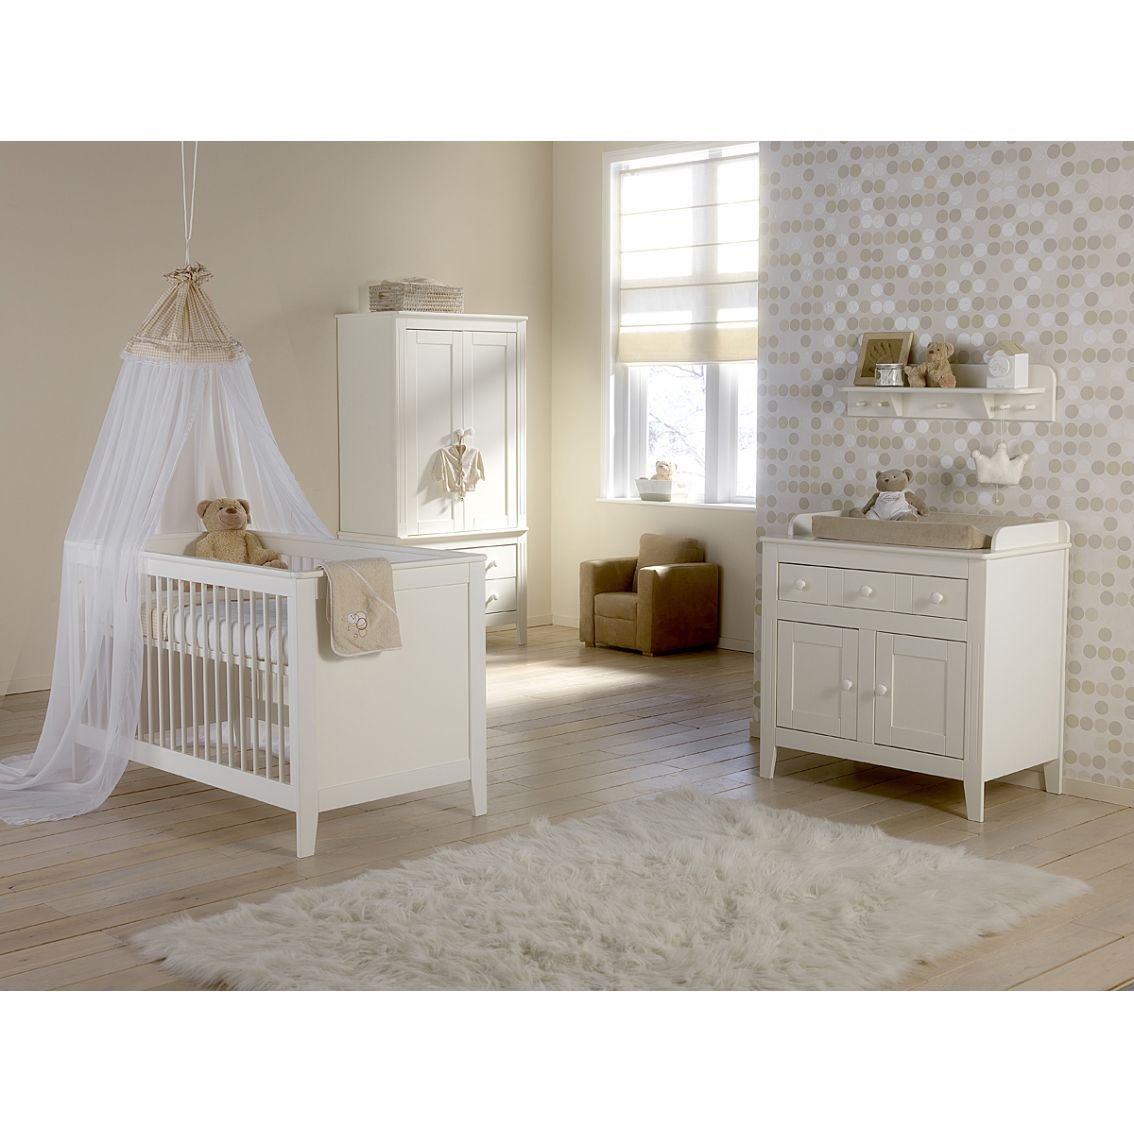 Fancy Baby Cribs | Restoration Hardware Cribs | High End Cribs